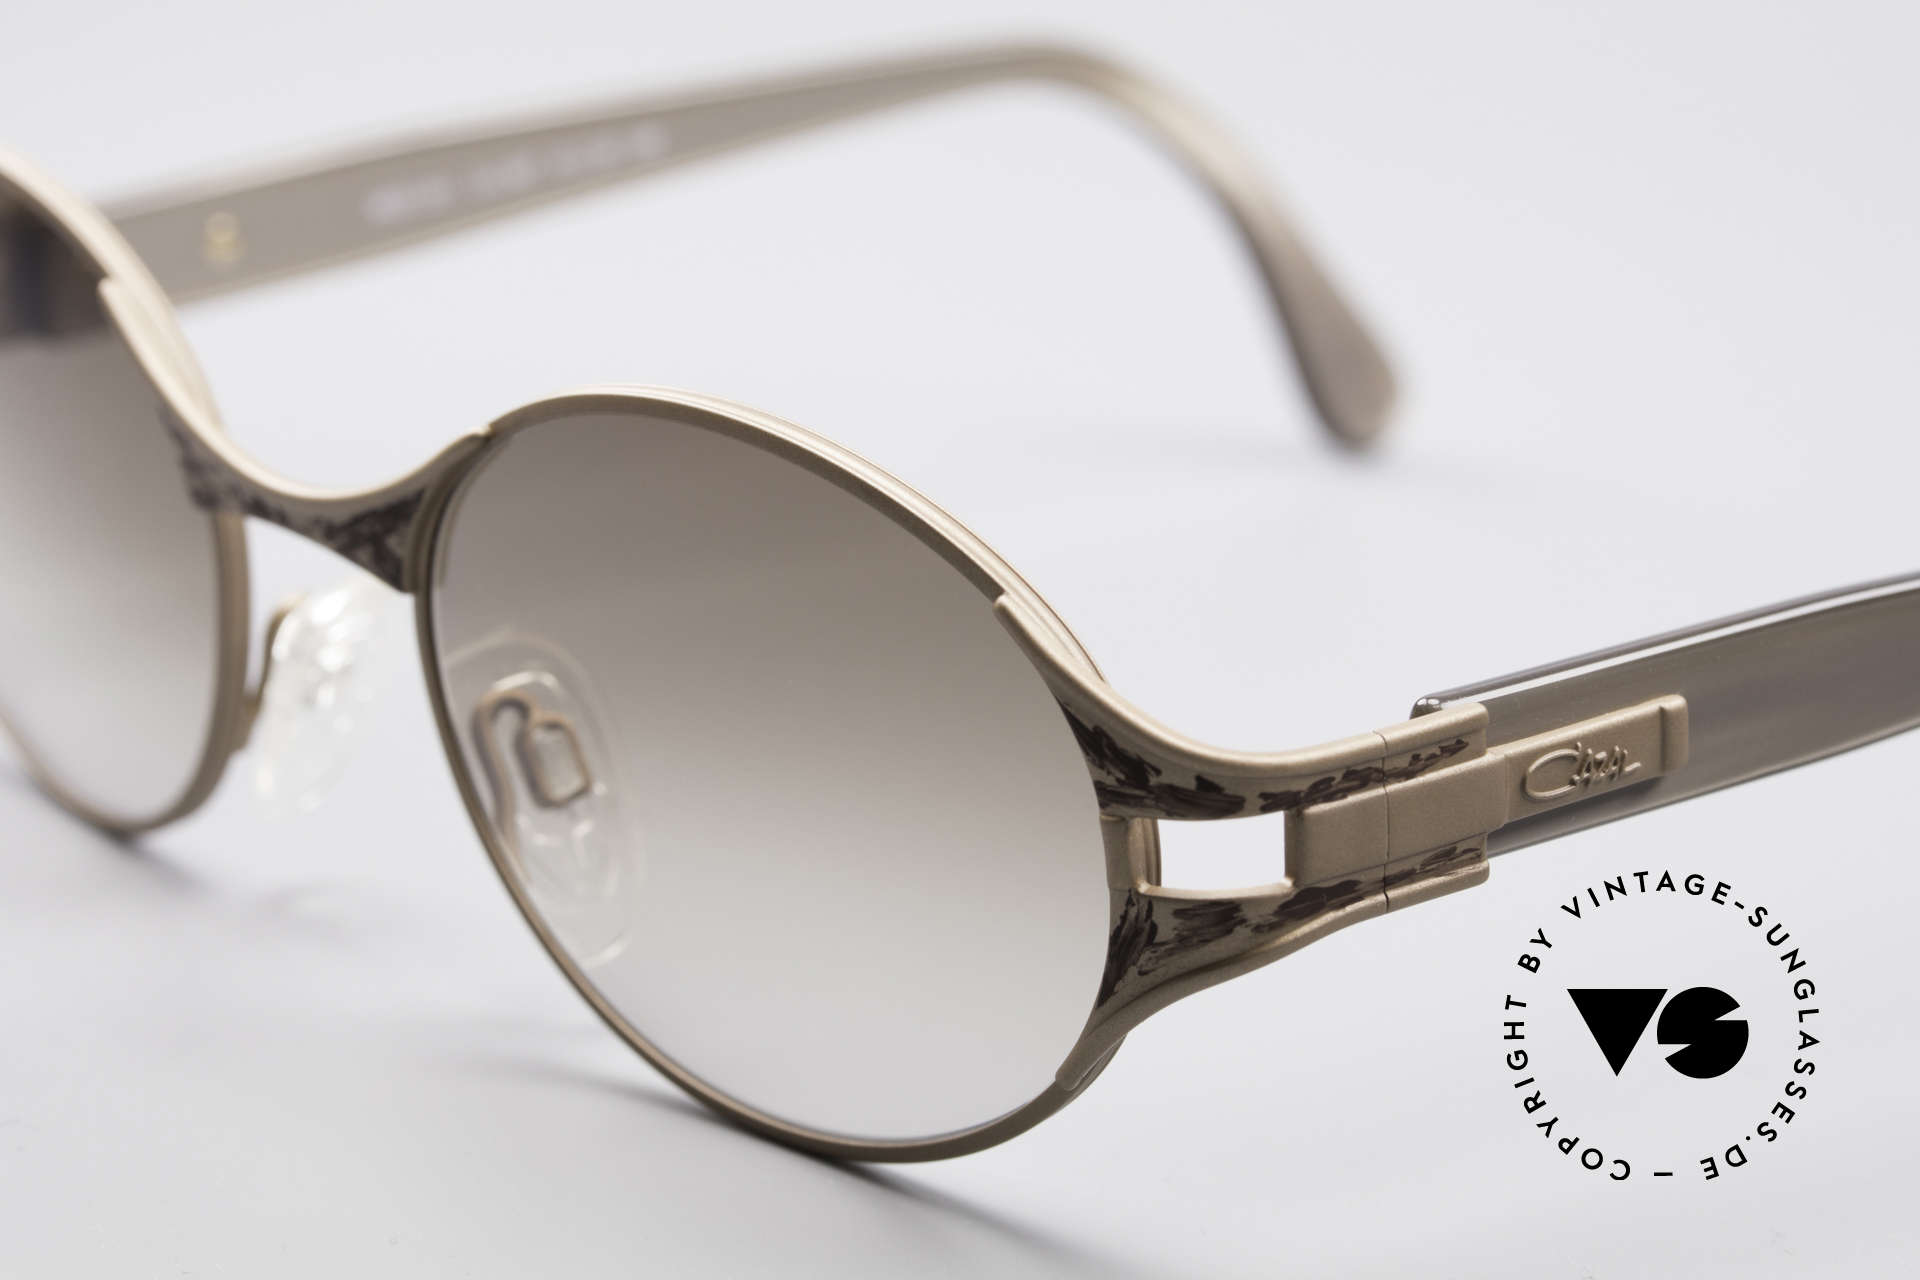 Cazal 281 90's Sunglasses Oval Round, unworn condition; like all our vintage Cazal shades, Made for Women